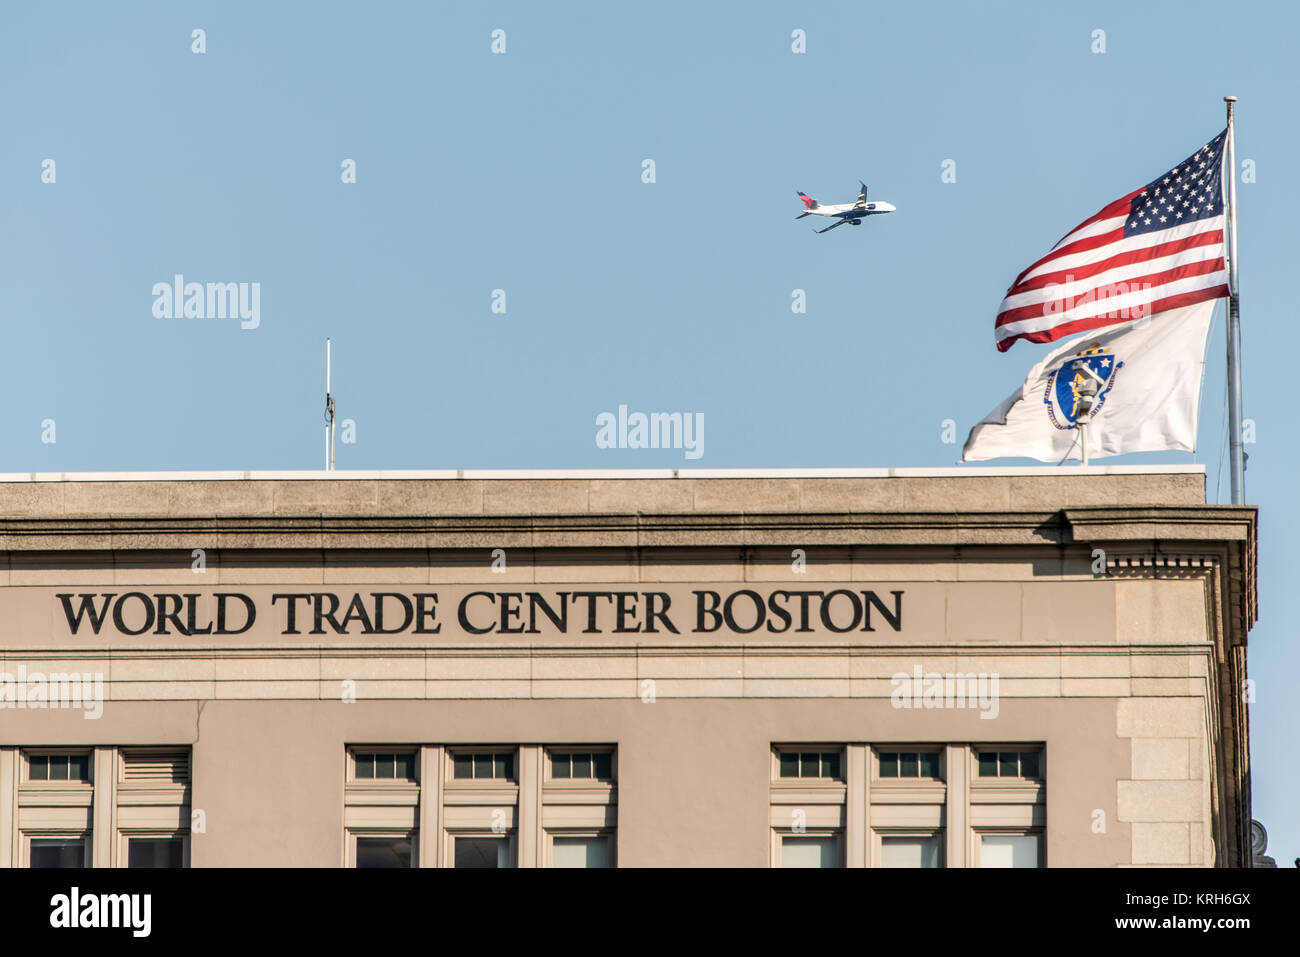 Seaport World Trade Center in Boston The building is located on the Boston waterfront at Commonwealth Pier, in the - Stock Image